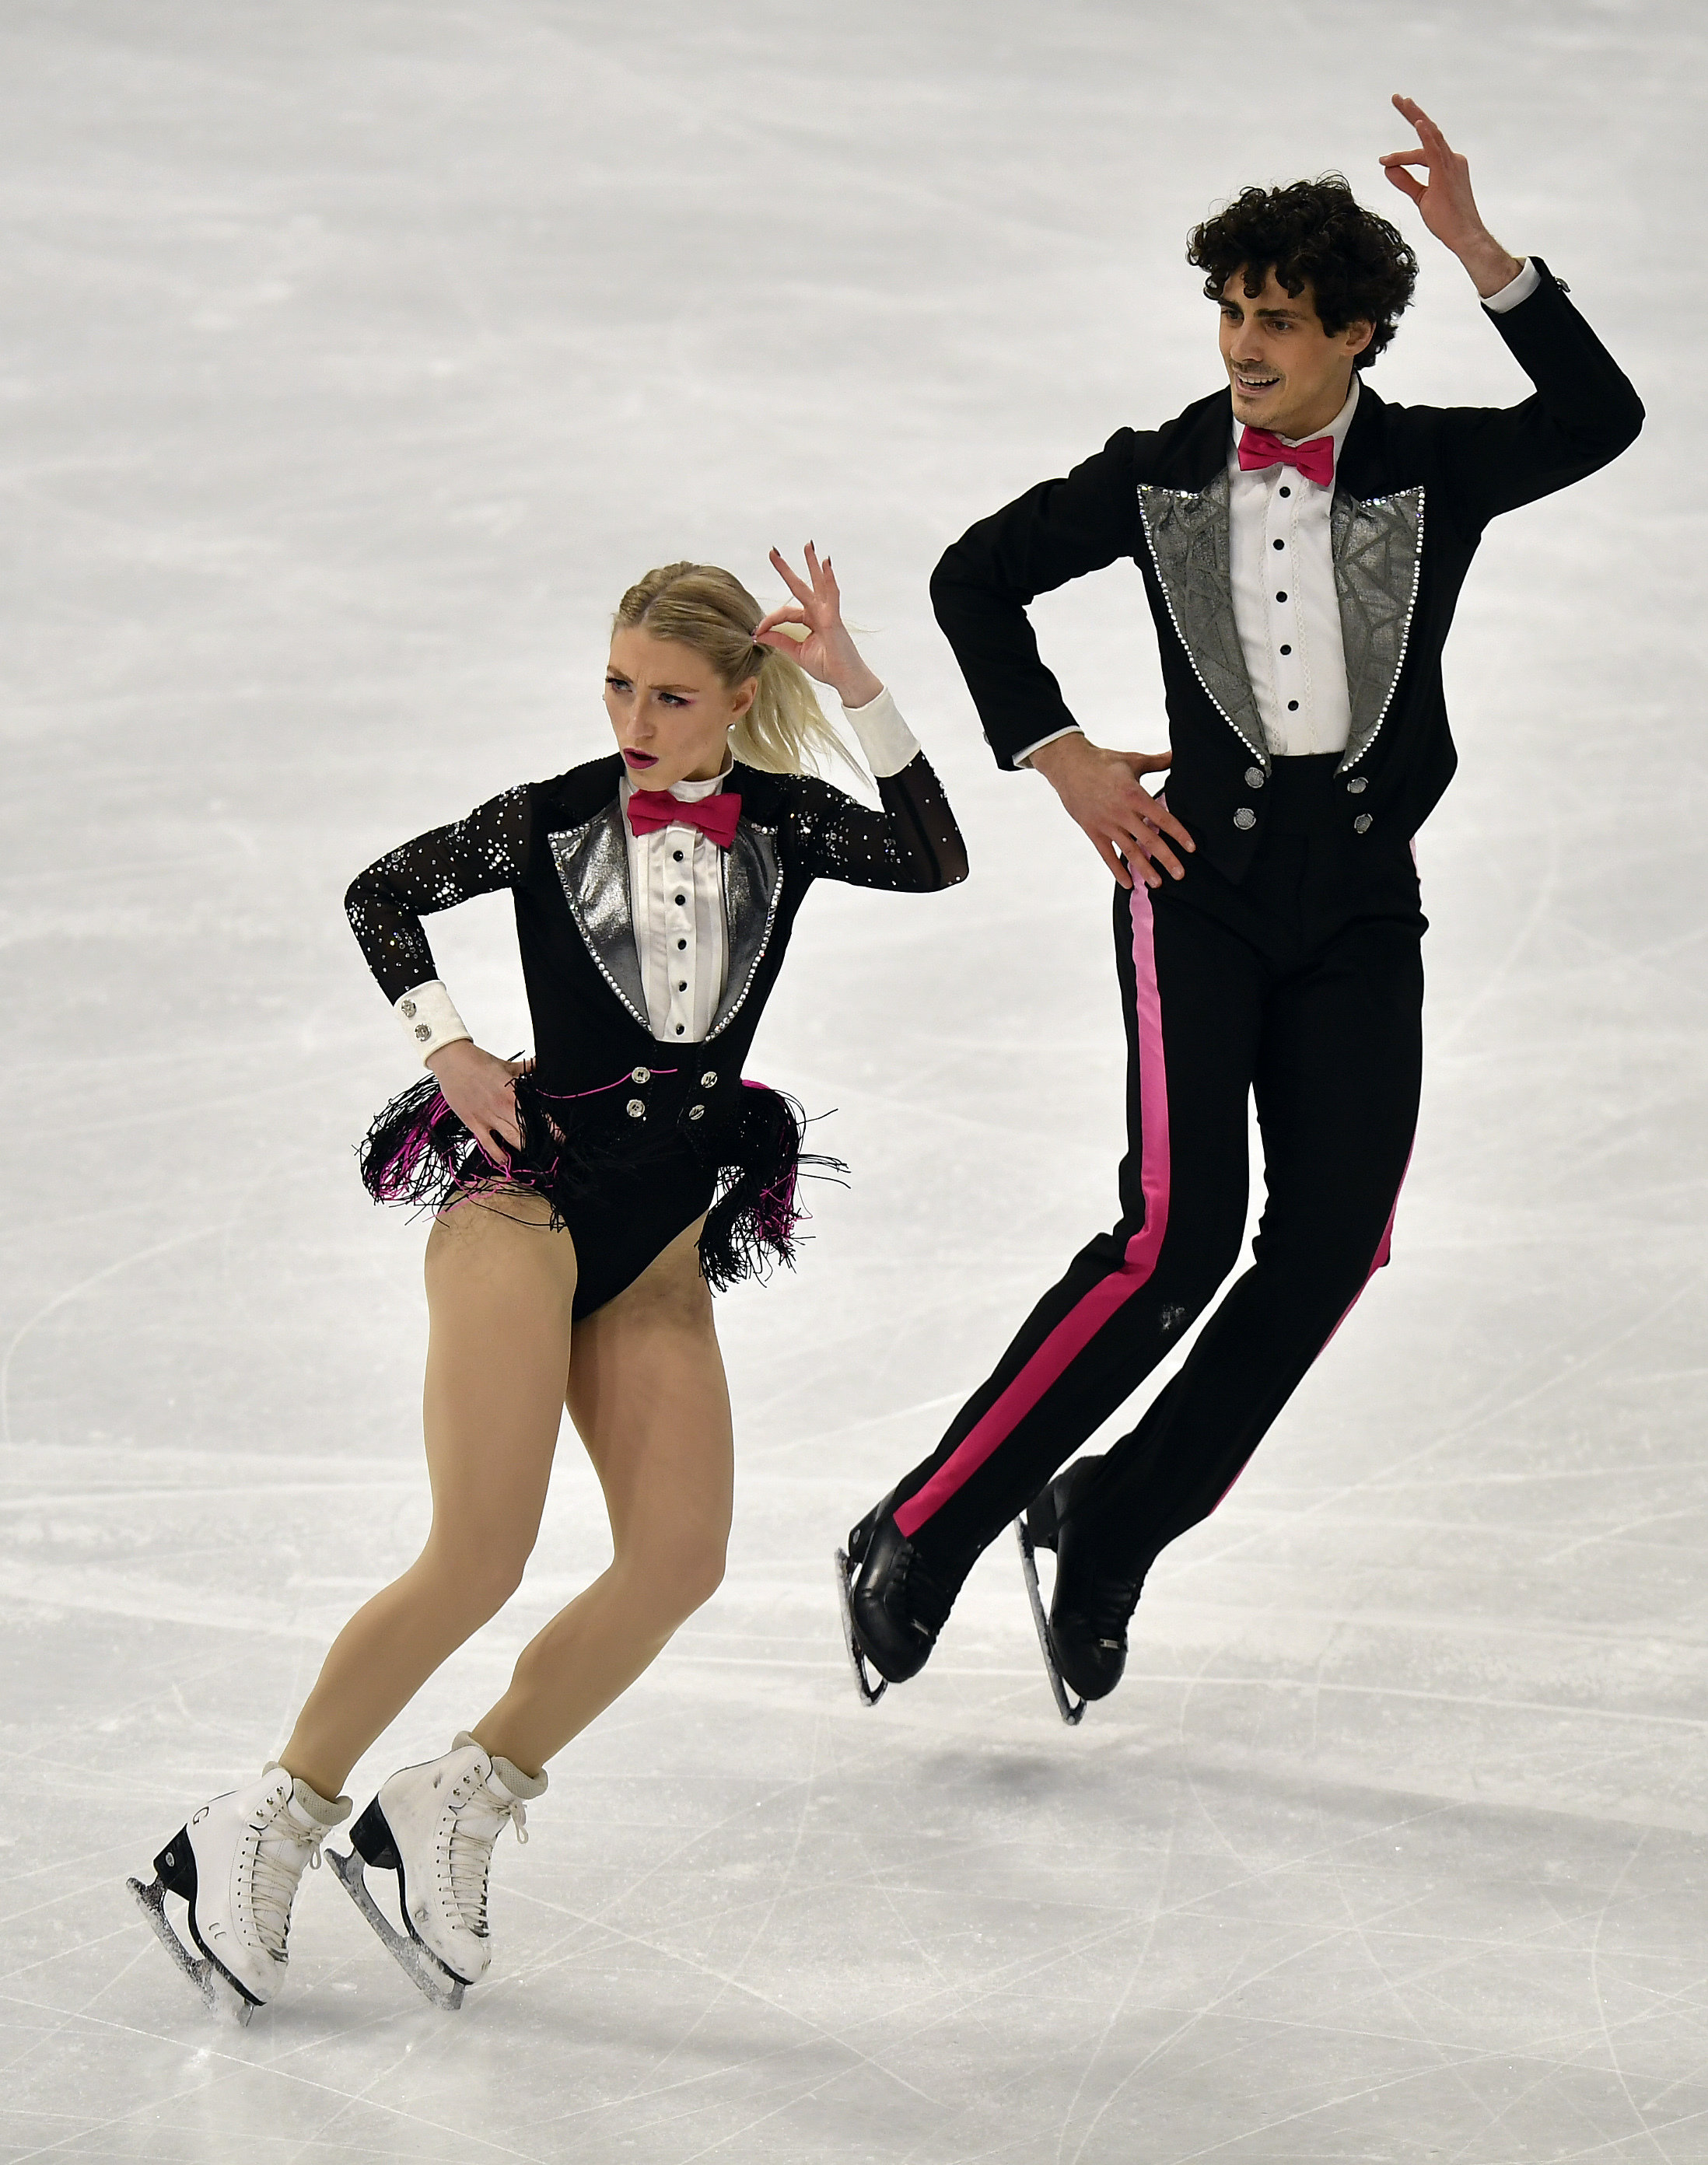 Two ice dancers perform side by side